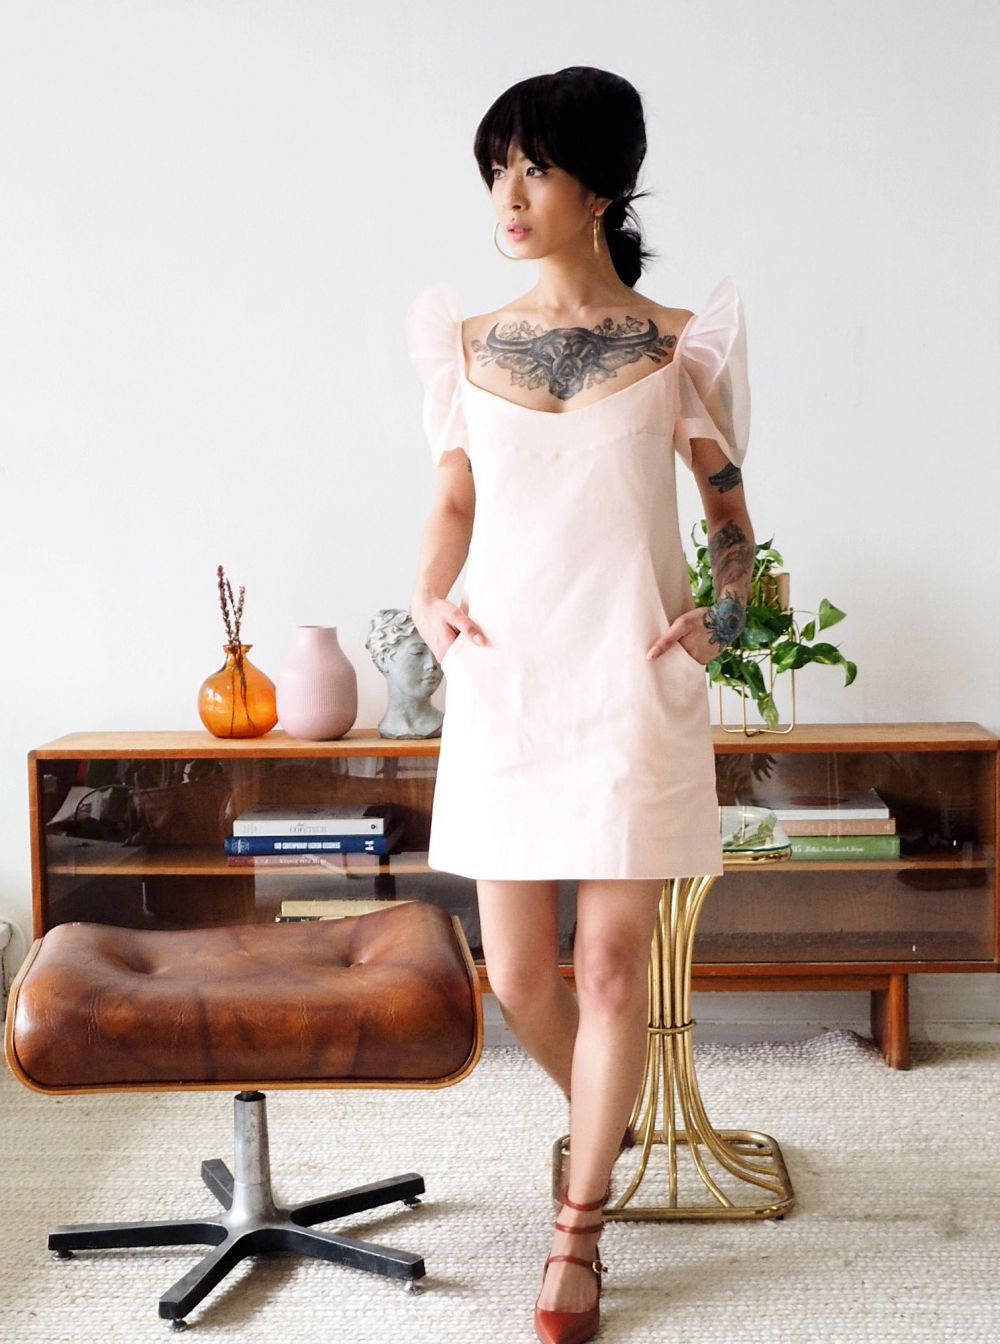 VINTA Shoulder Shift Terno Dress, Pearly Peach, full shot, mod styled with strappy red heels